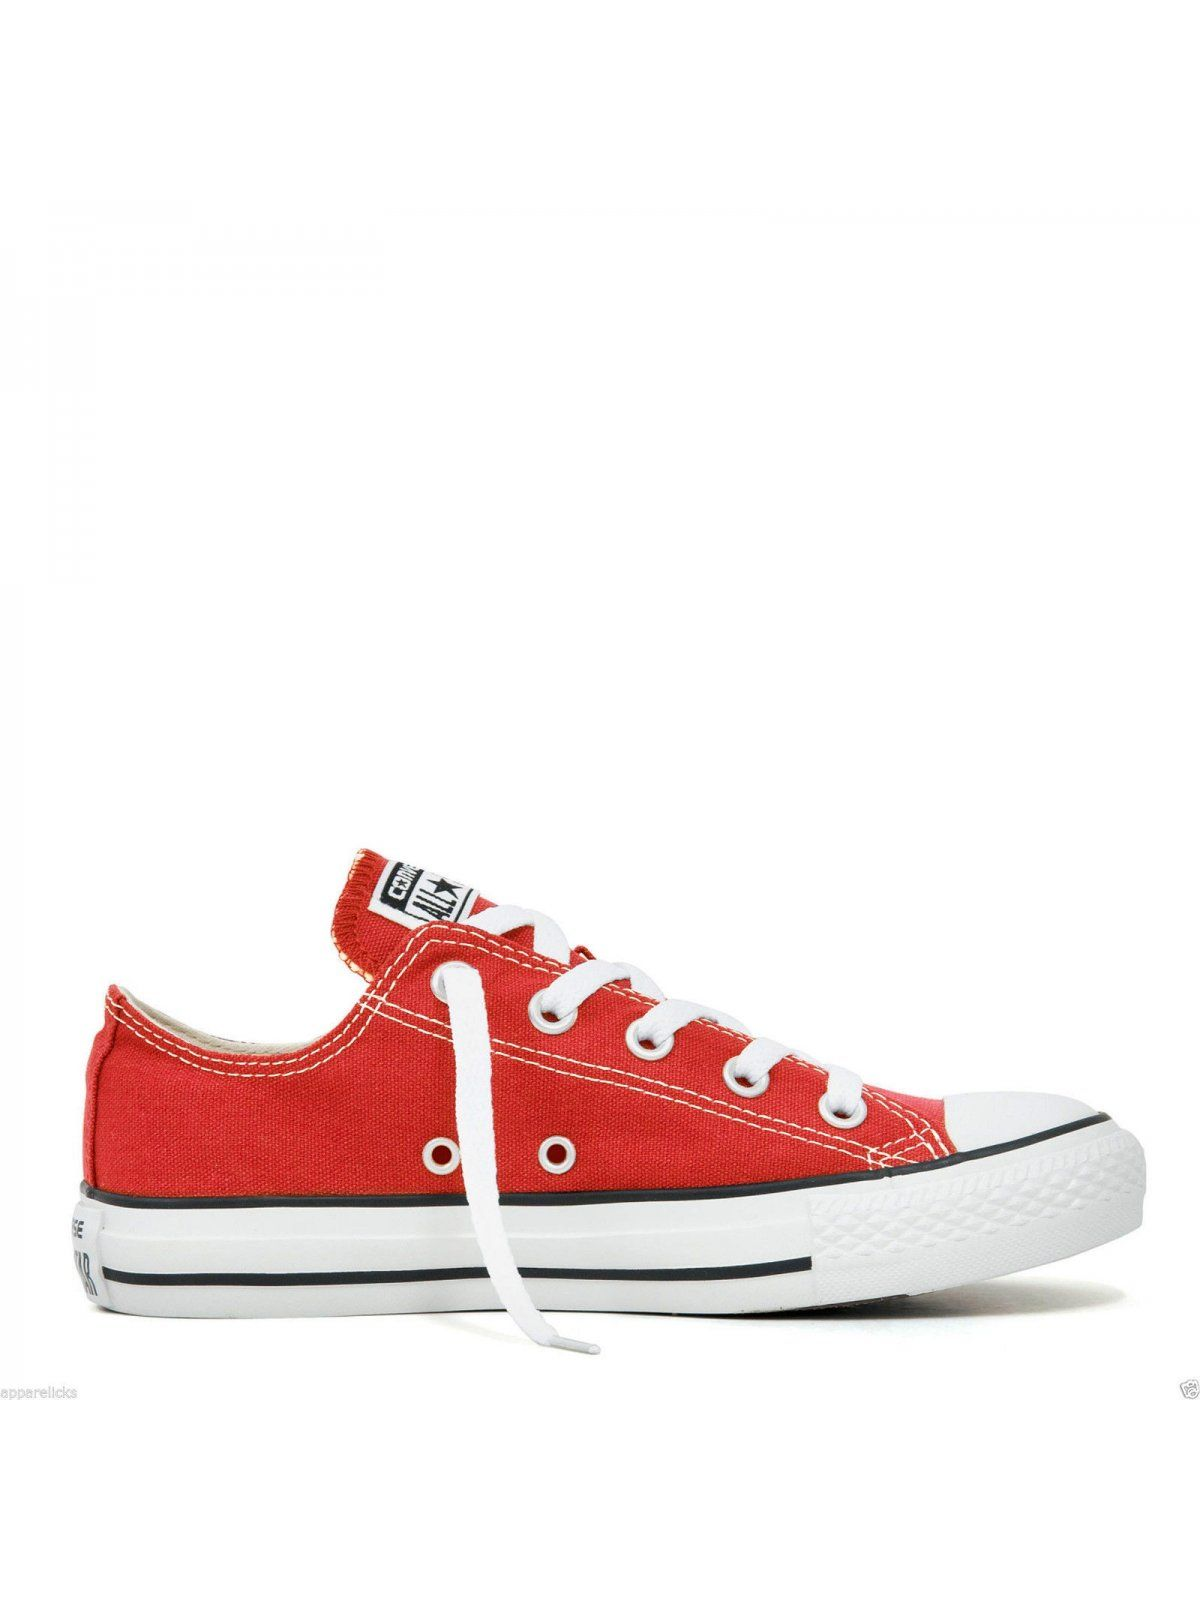 Converse All Star Unisex Chuck Taylor Low Top - Red